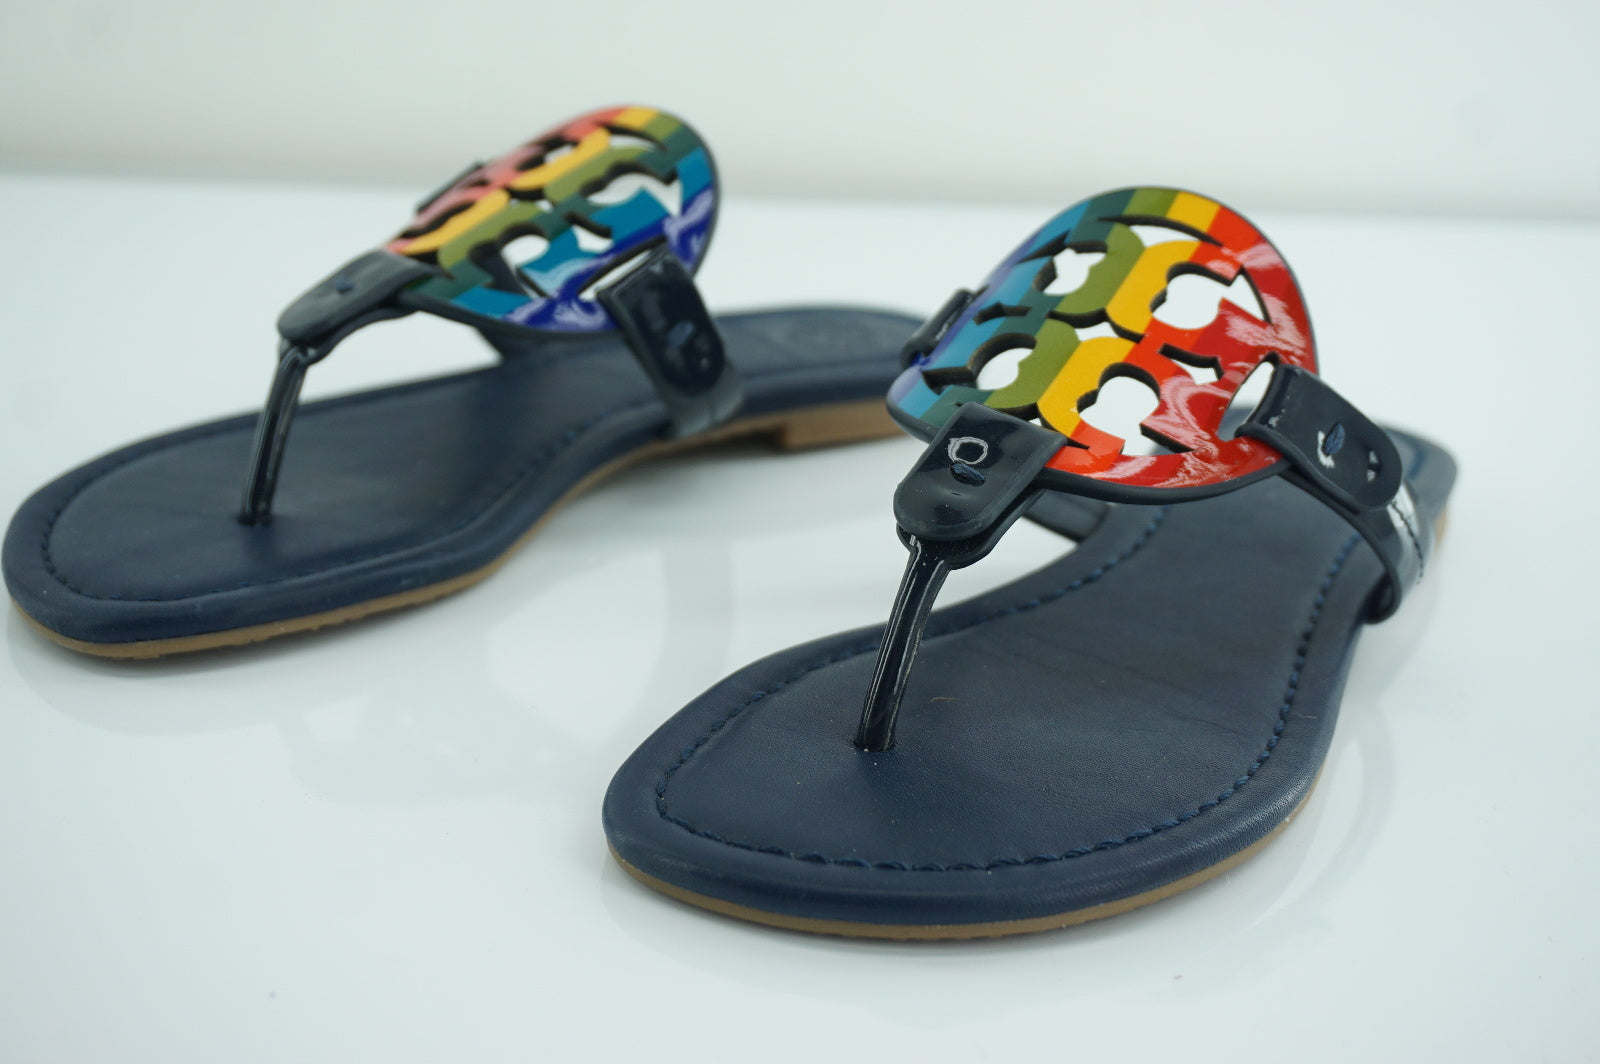 Tory Burch Miller Navy Leather Rainbow Logo Thong Sandal Size 4 Slide